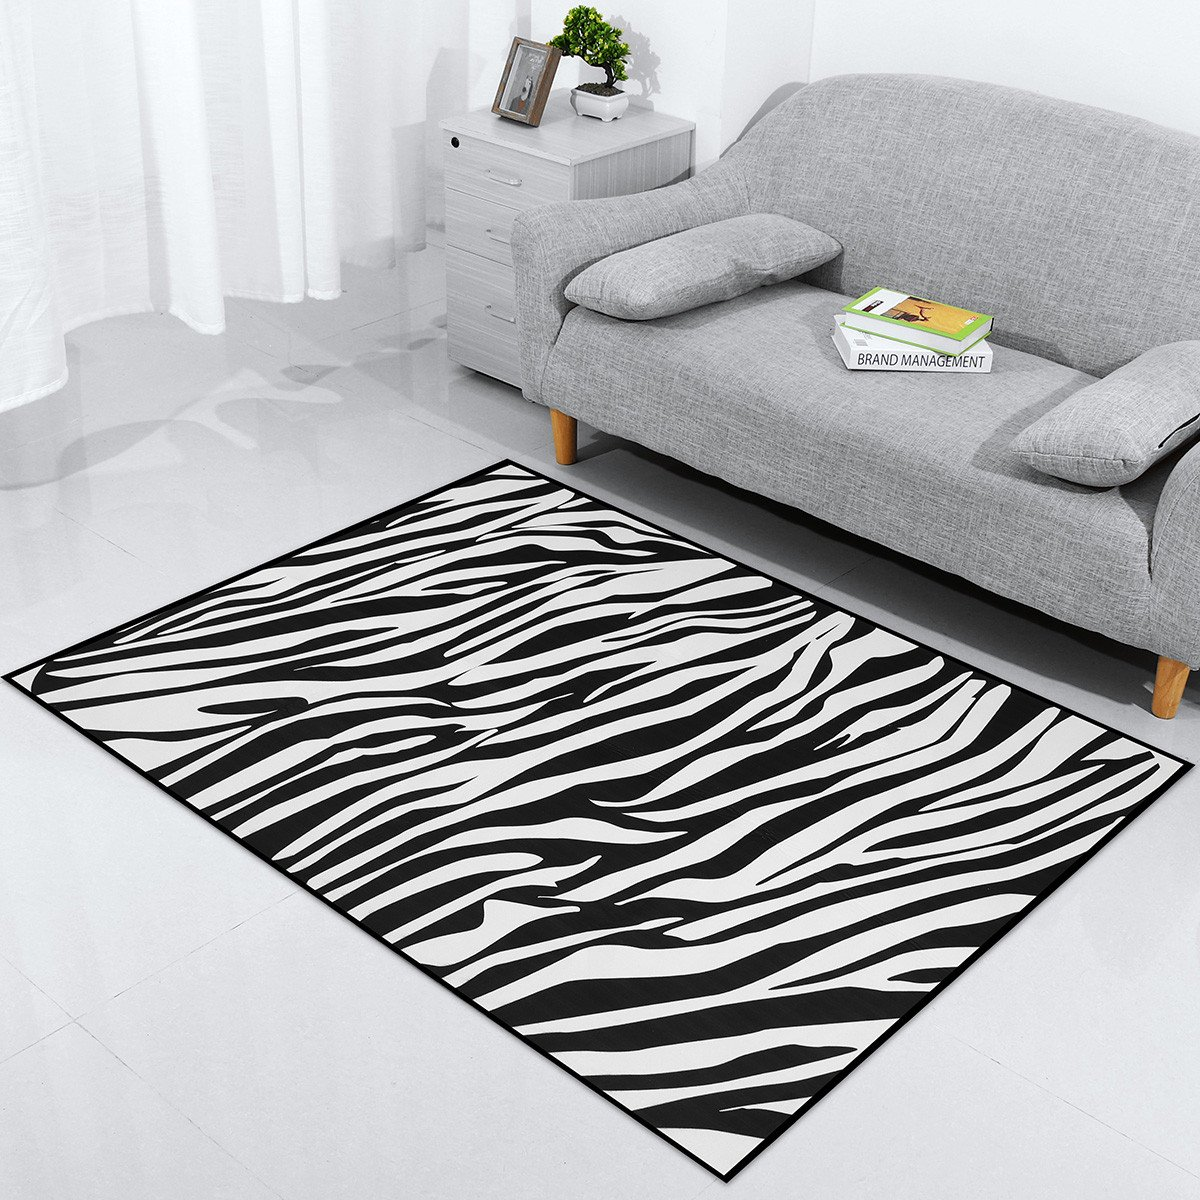 Rug On Carpet Bedroom Unique Living Room Carpet Bedroom sofa Rug Floor Mat Decor Kitchen